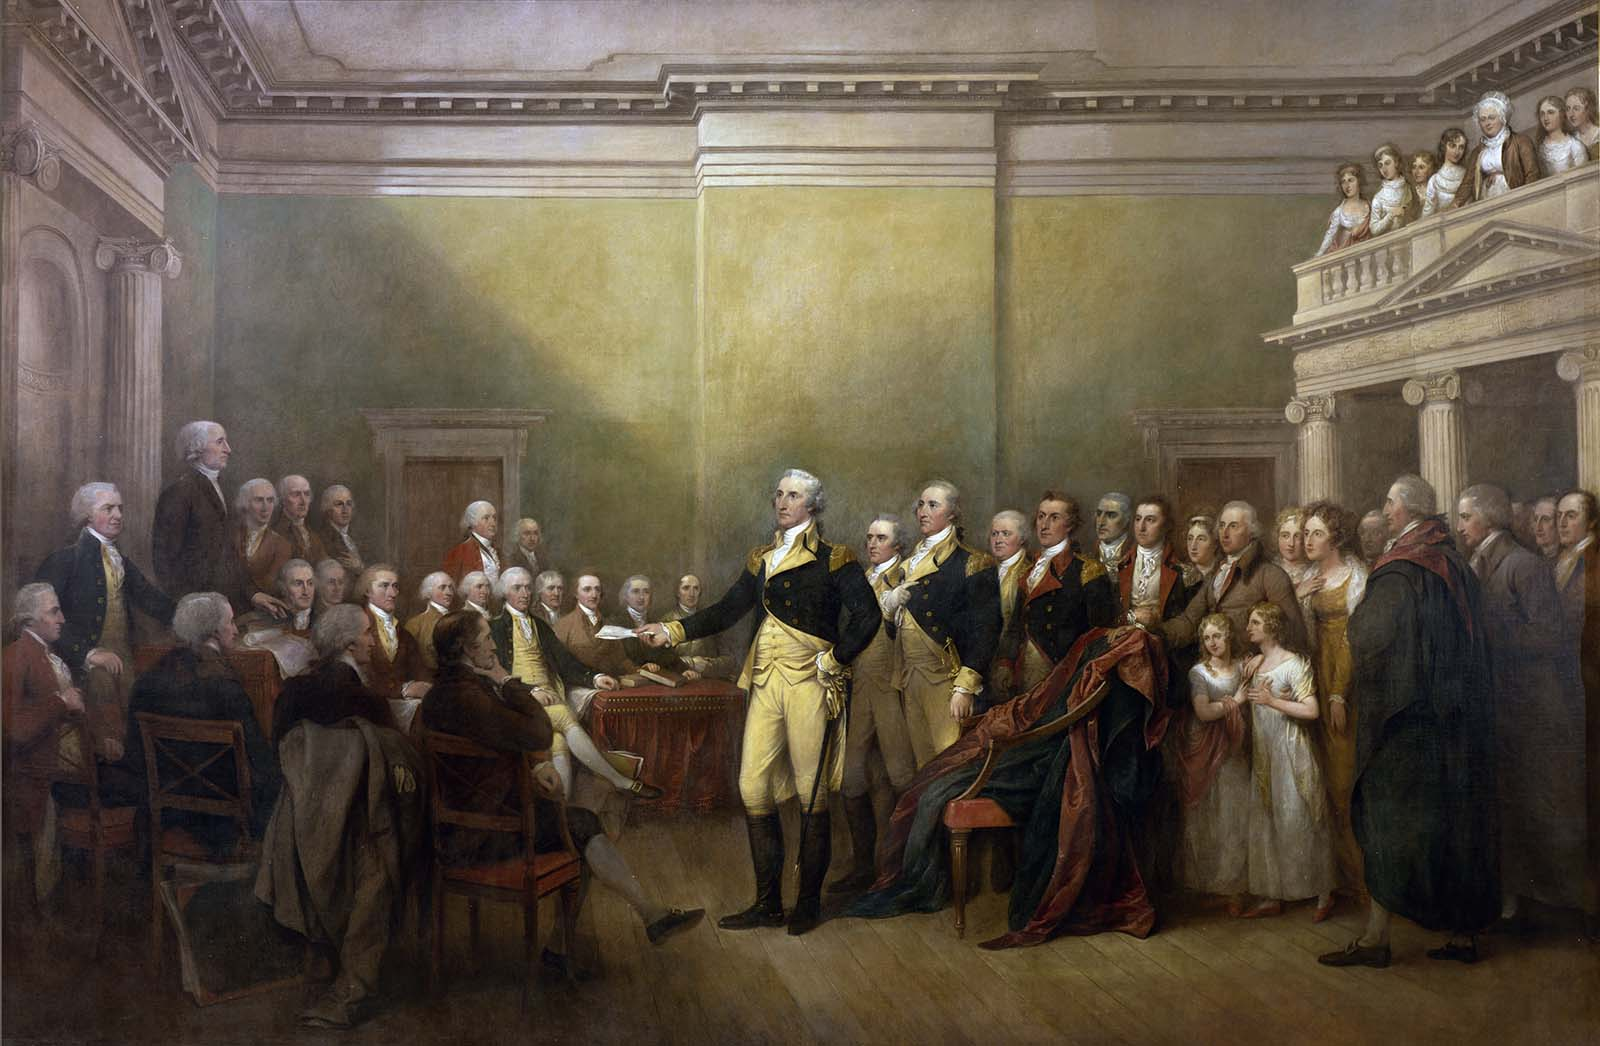 5 the american revolution the american yawp another john trumbull piece commissioned for the capitol in 1817 this painting depicts what would publicscrutiny Images